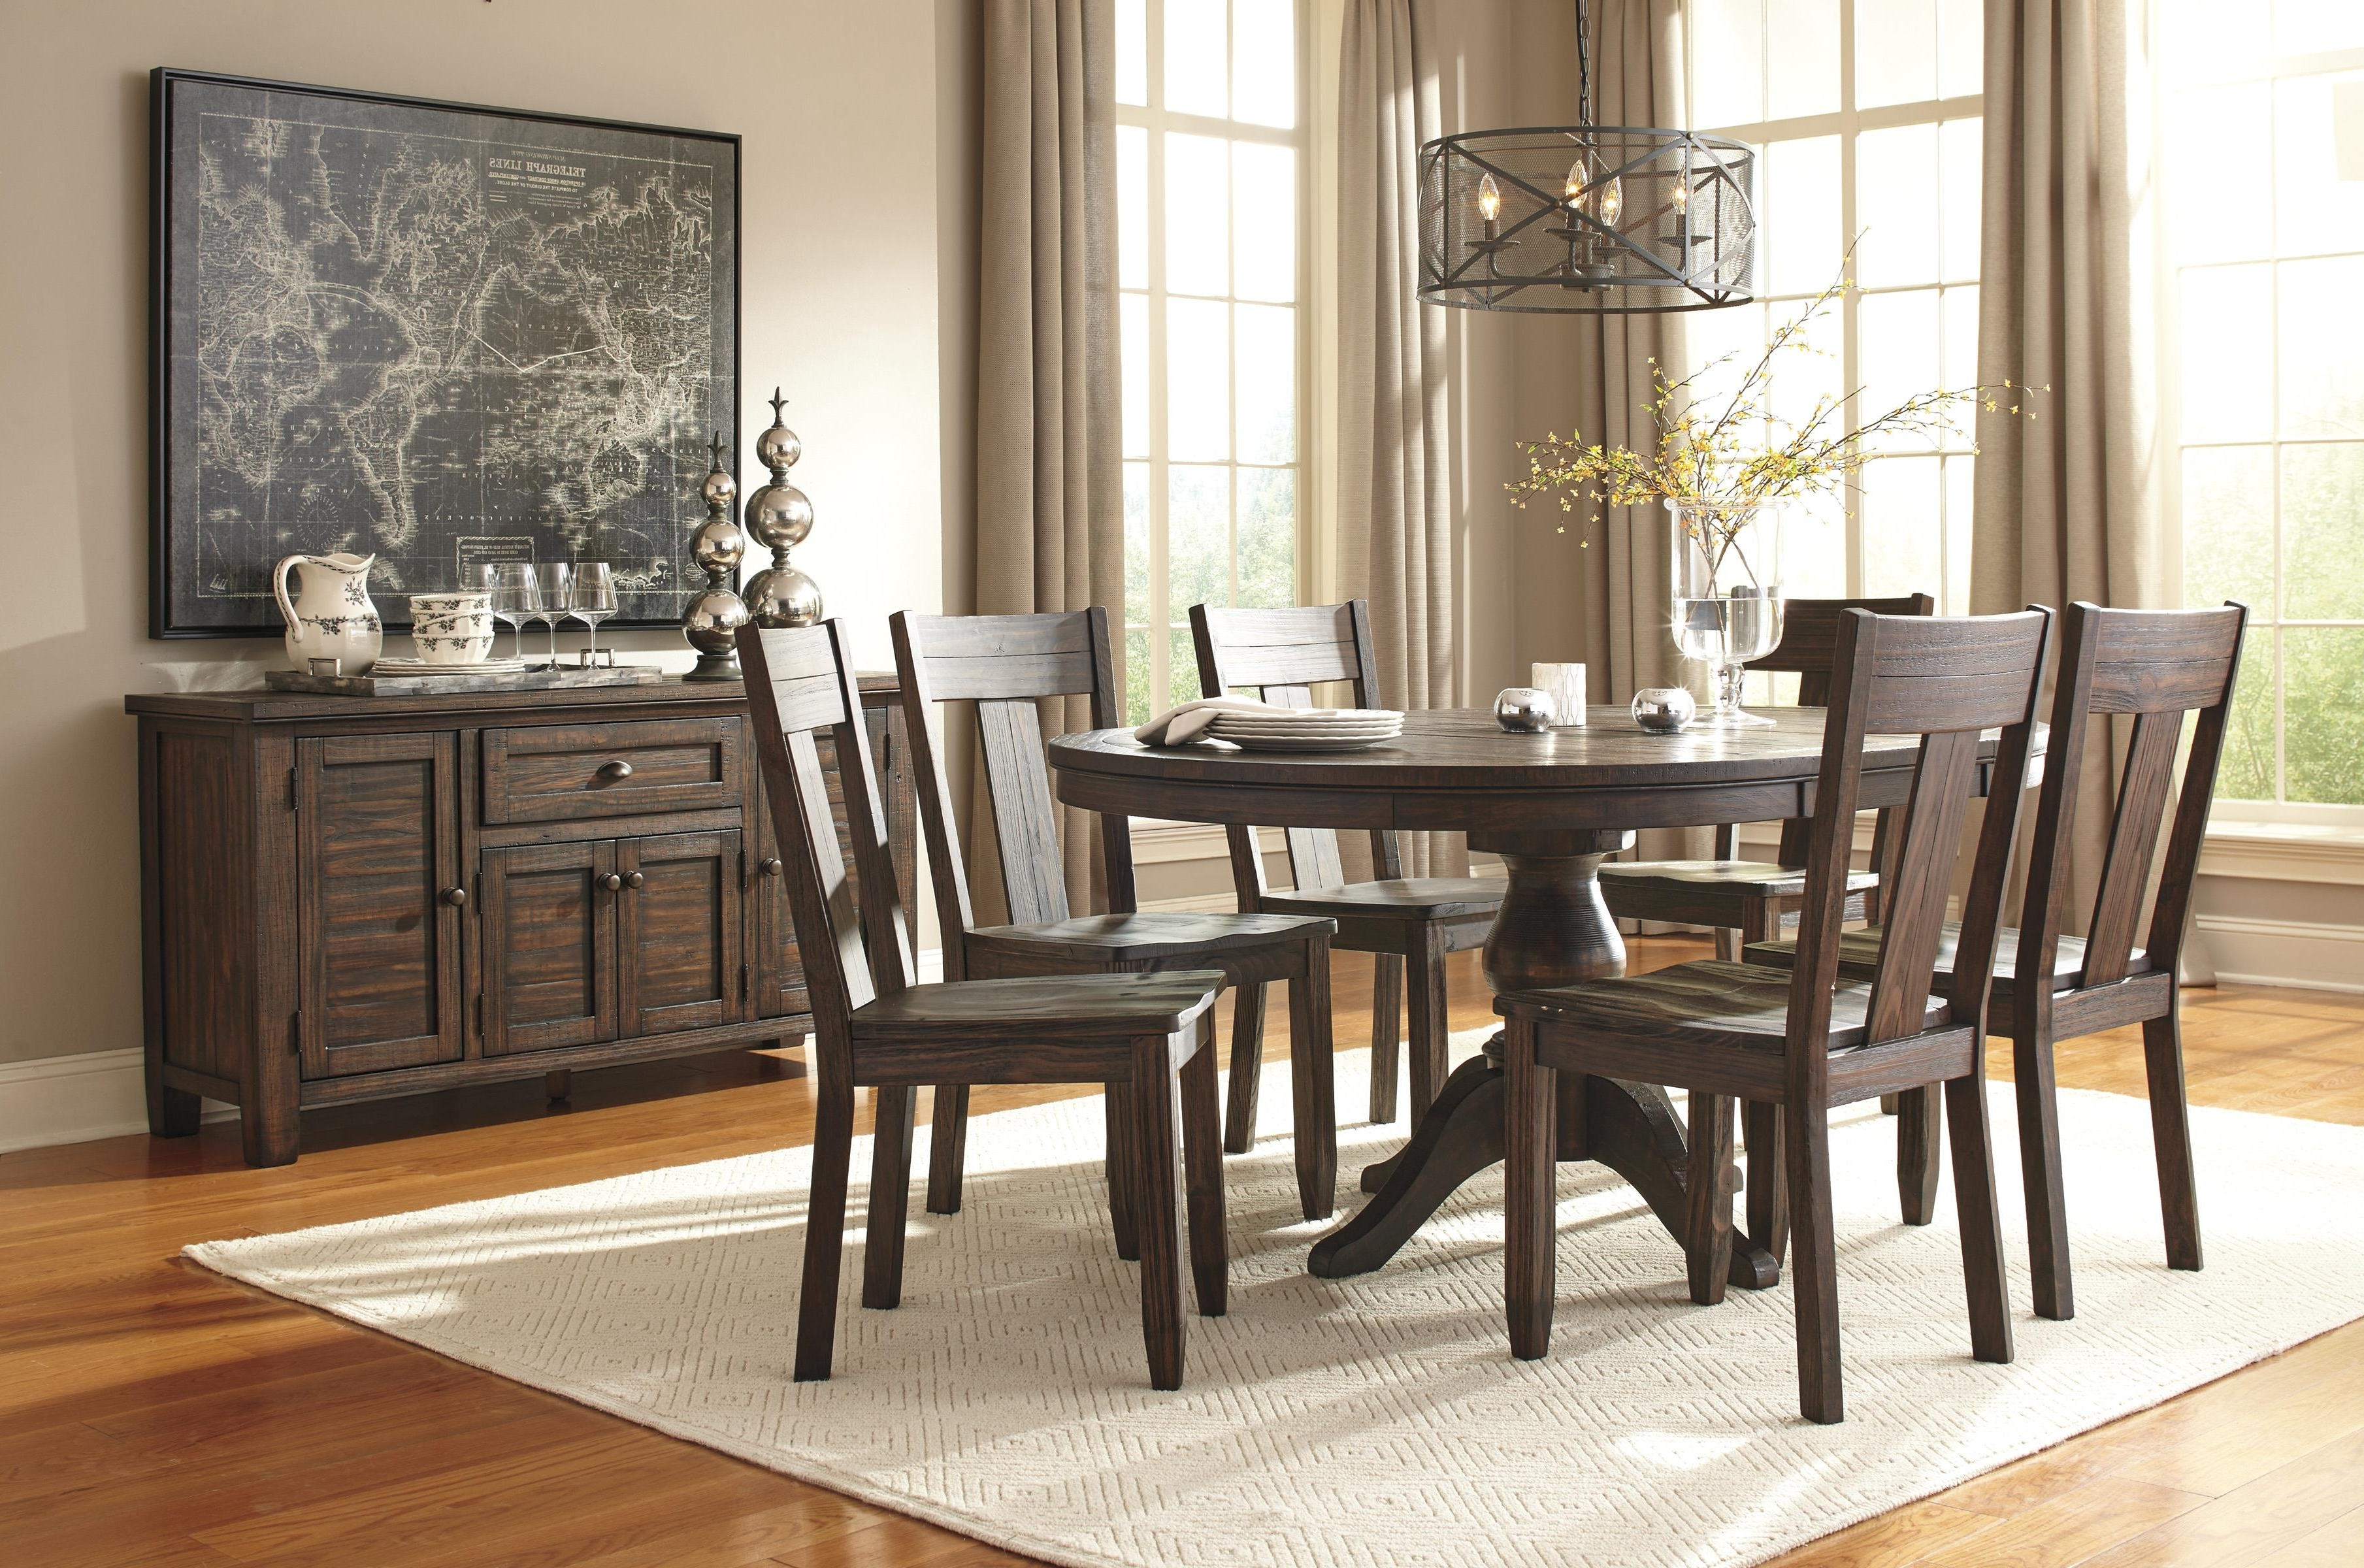 Fashionable Parquet 7 Piece Dining Sets Regarding 7 Piece Oval Dining Table Set With Wood Seat Side Chairs (View 4 of 25)